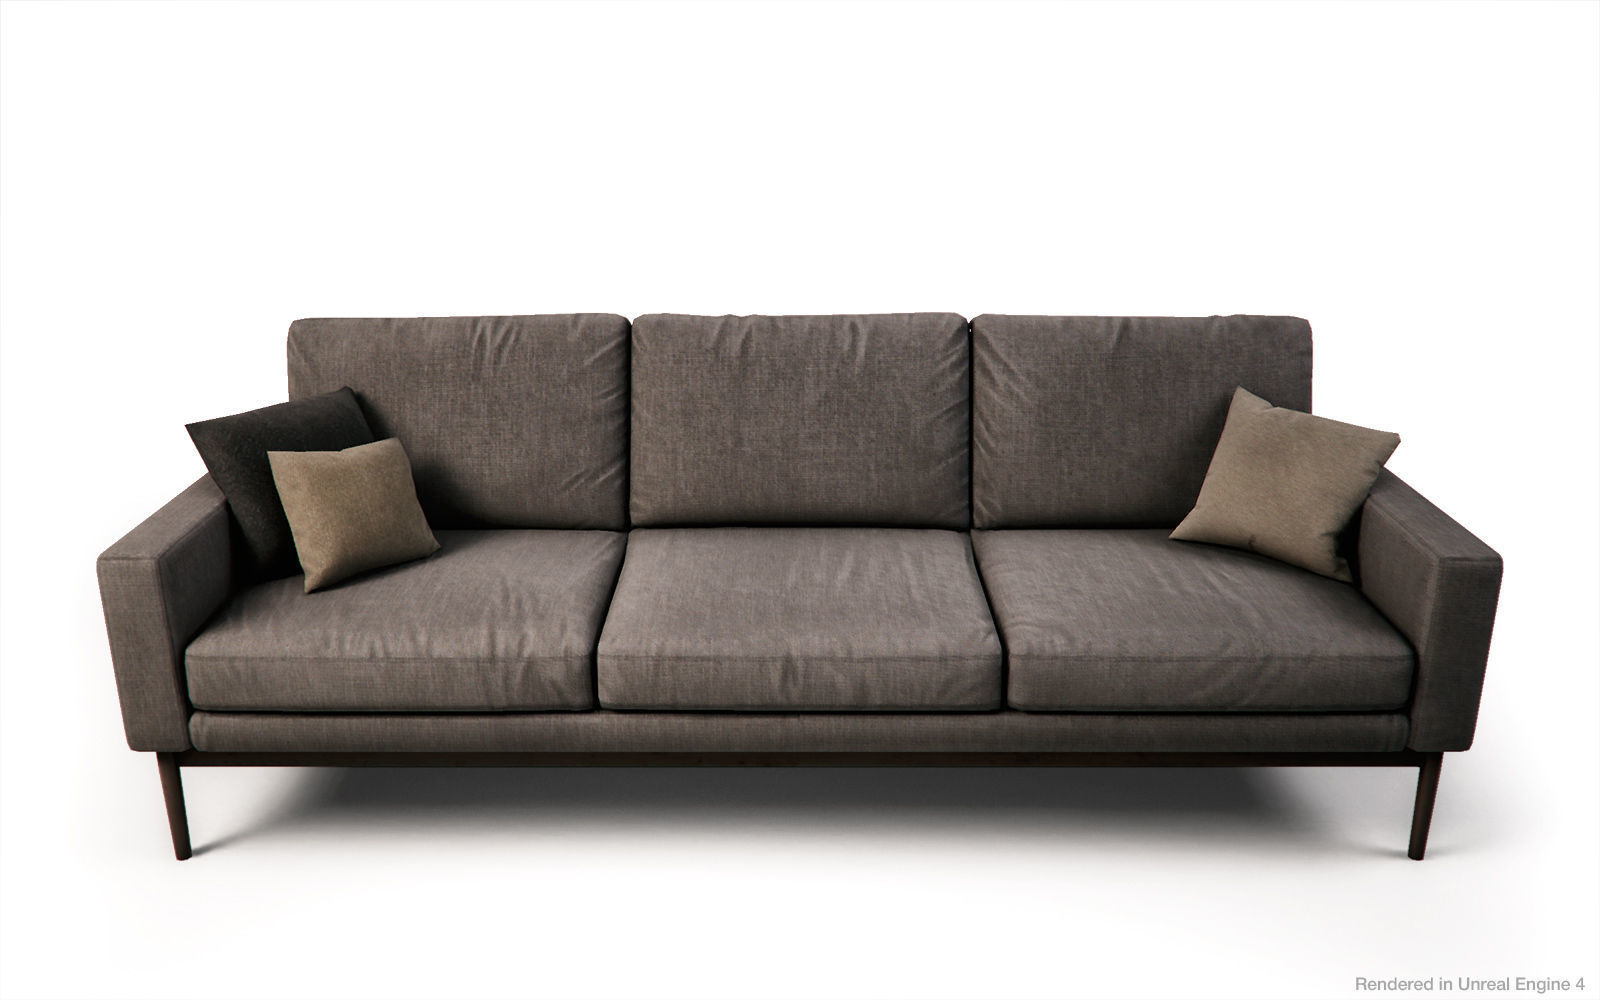 Scandinavian style Sofas and Armchair PBR Game 3D asset